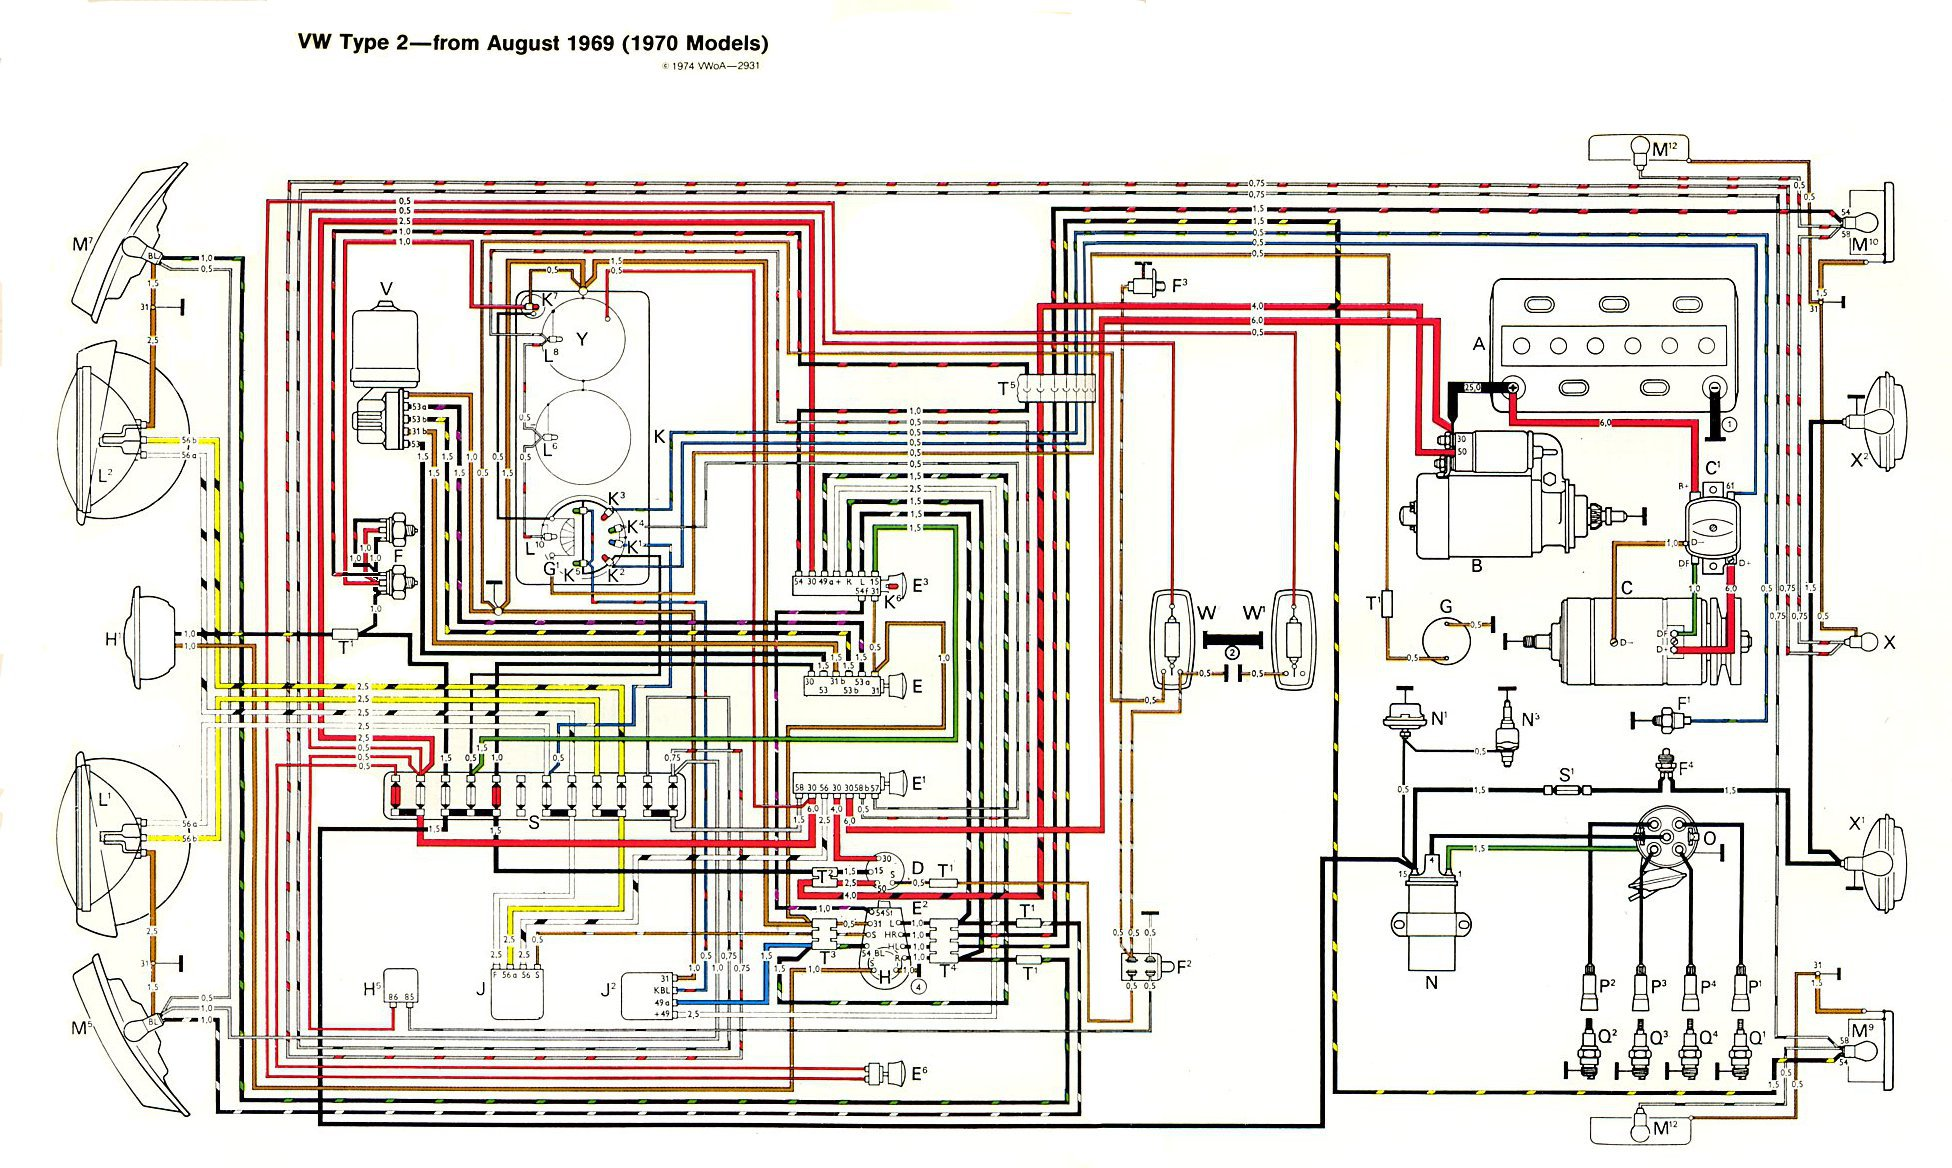 baybus_70 thesamba com type 2 wiring diagrams 1971 vw bus wiring diagram at aneh.co